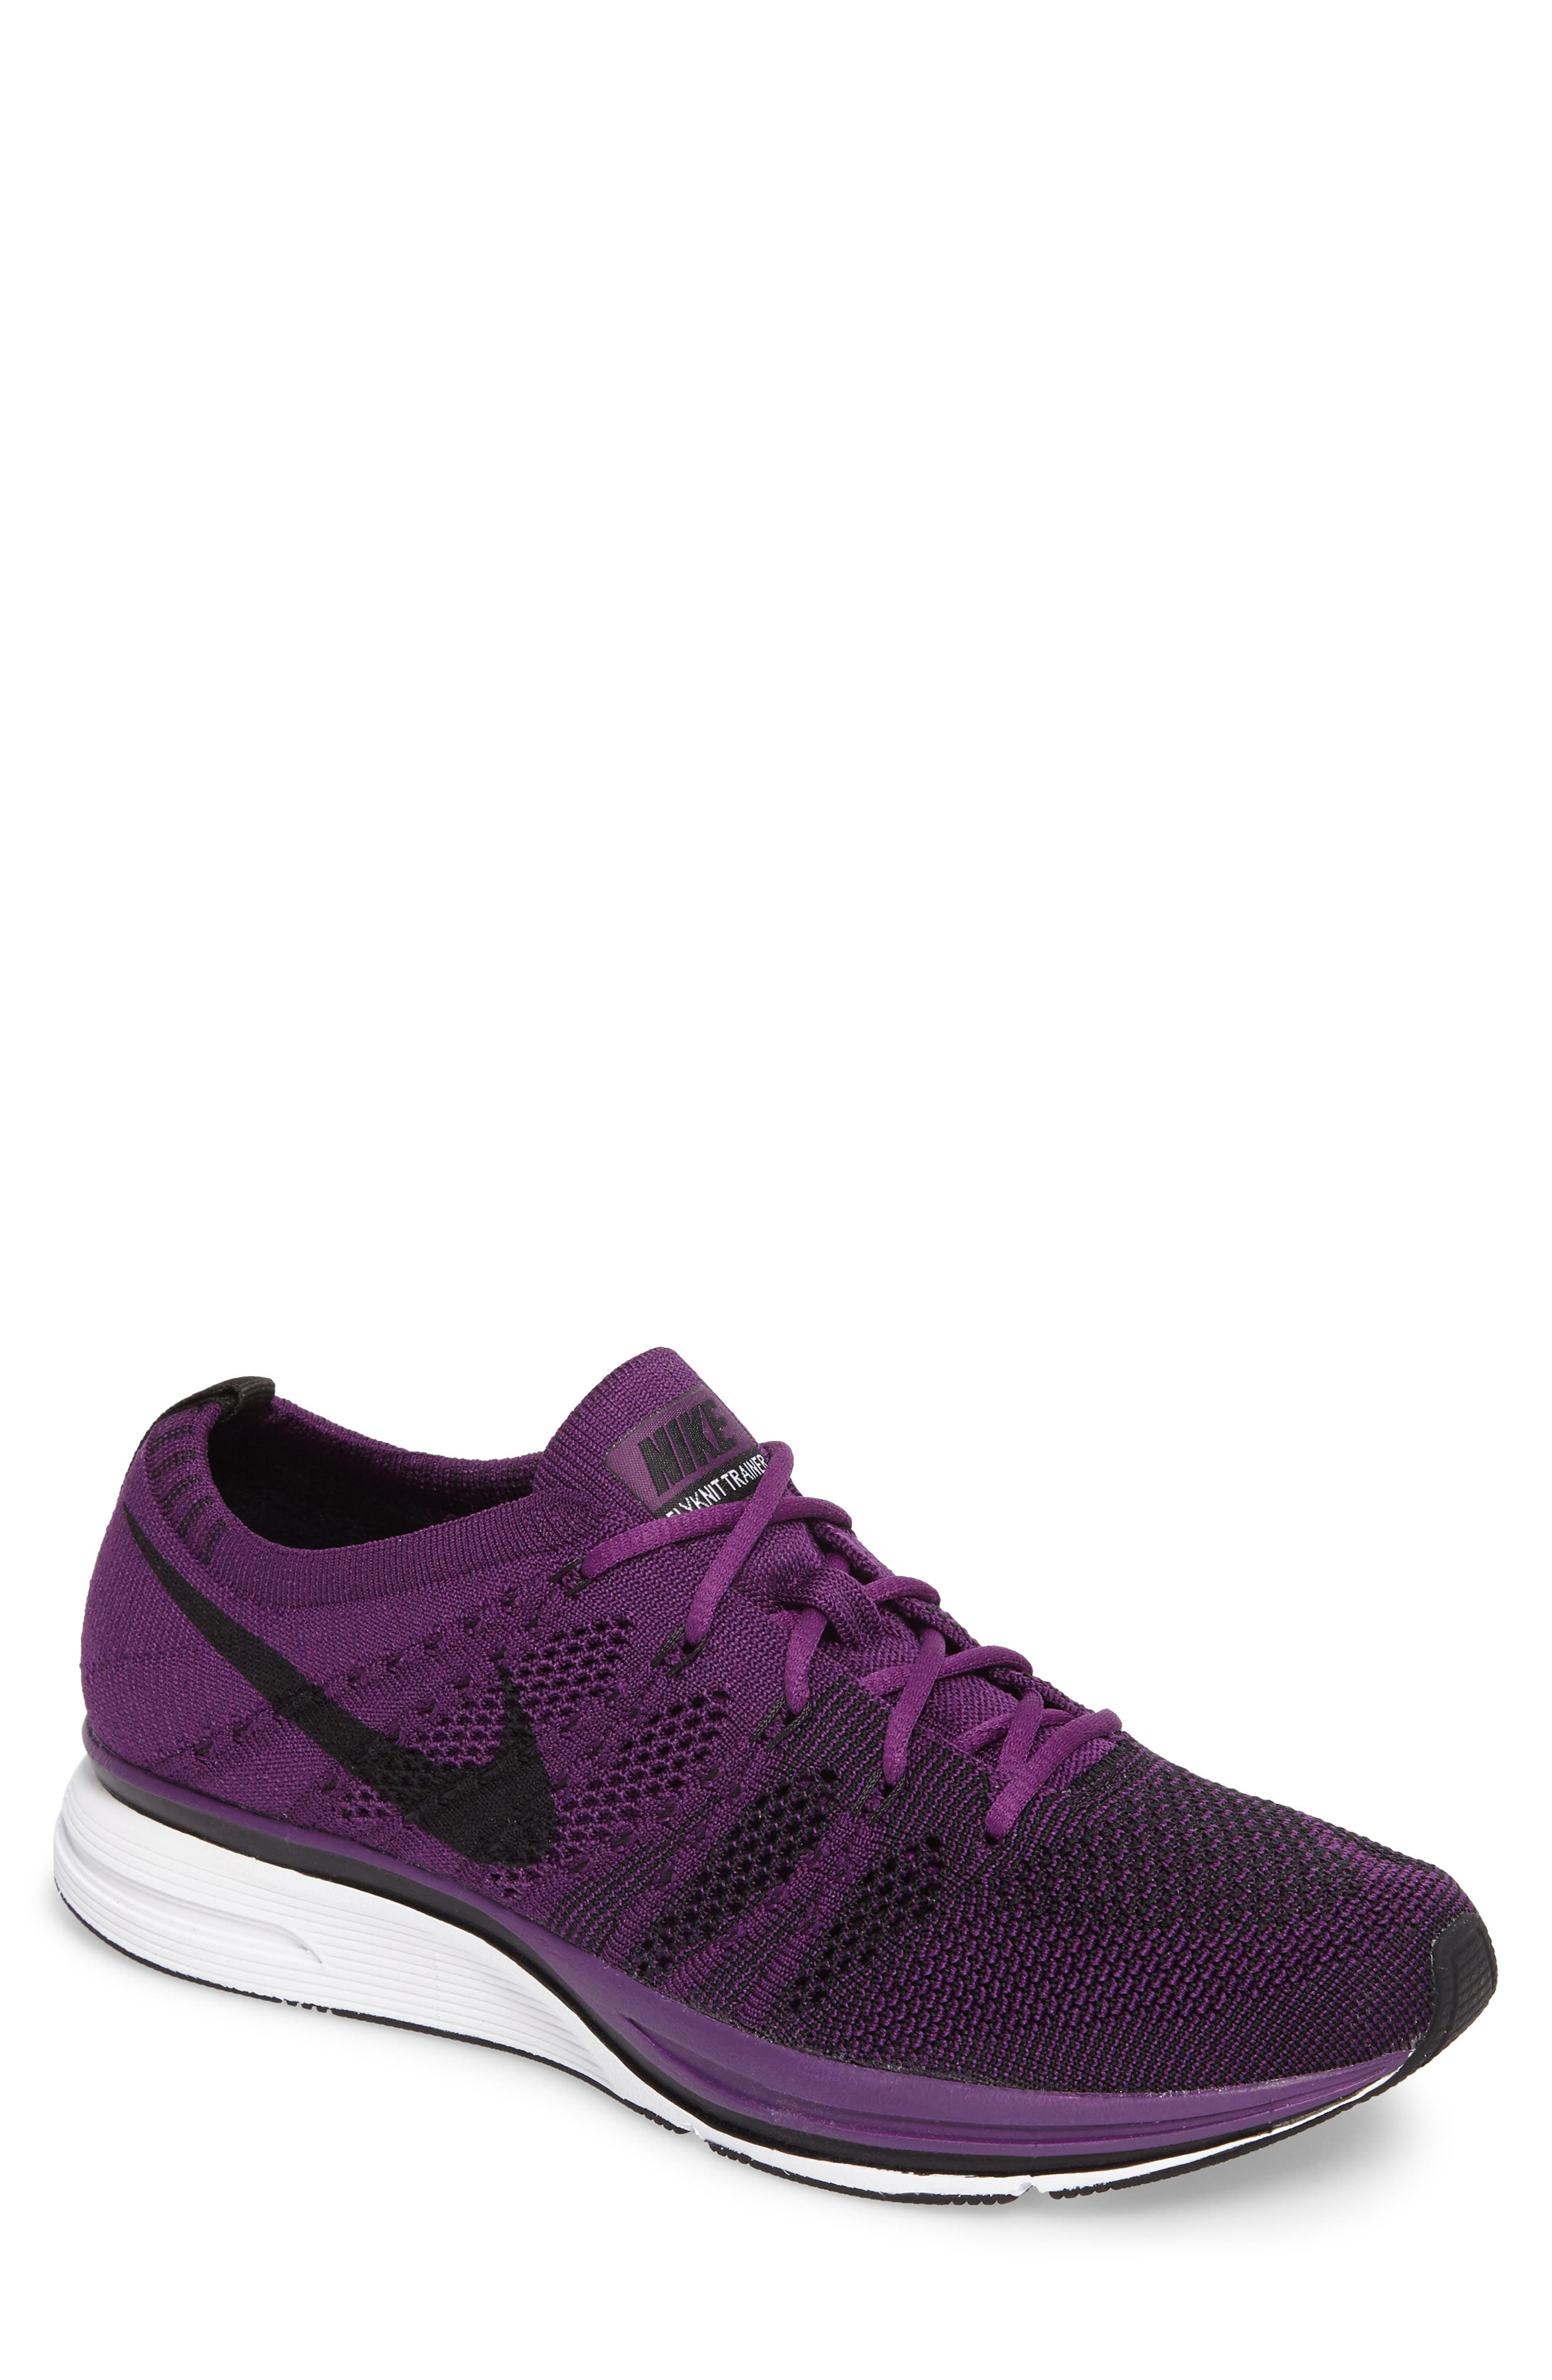 NikeLab Flyknit Trainer Sneaker,                         Main,                         color, NIGHT PURPLE/ BLACK/ WHITE